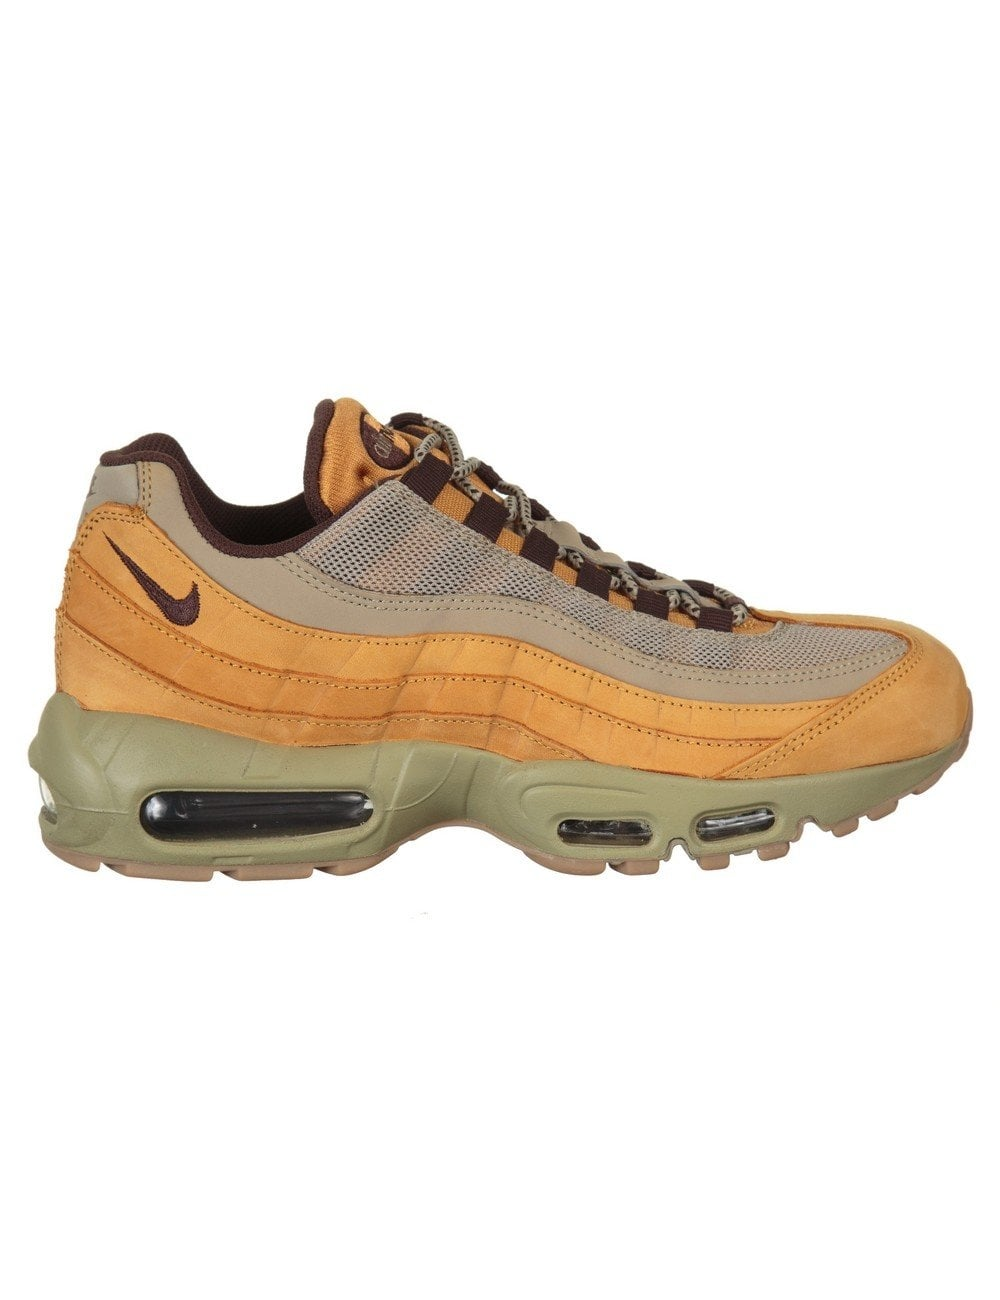 b5445196c754 Nike Air Max 95 Premium Shoes - Bronze (Bronze Pack) - Trainers from ...